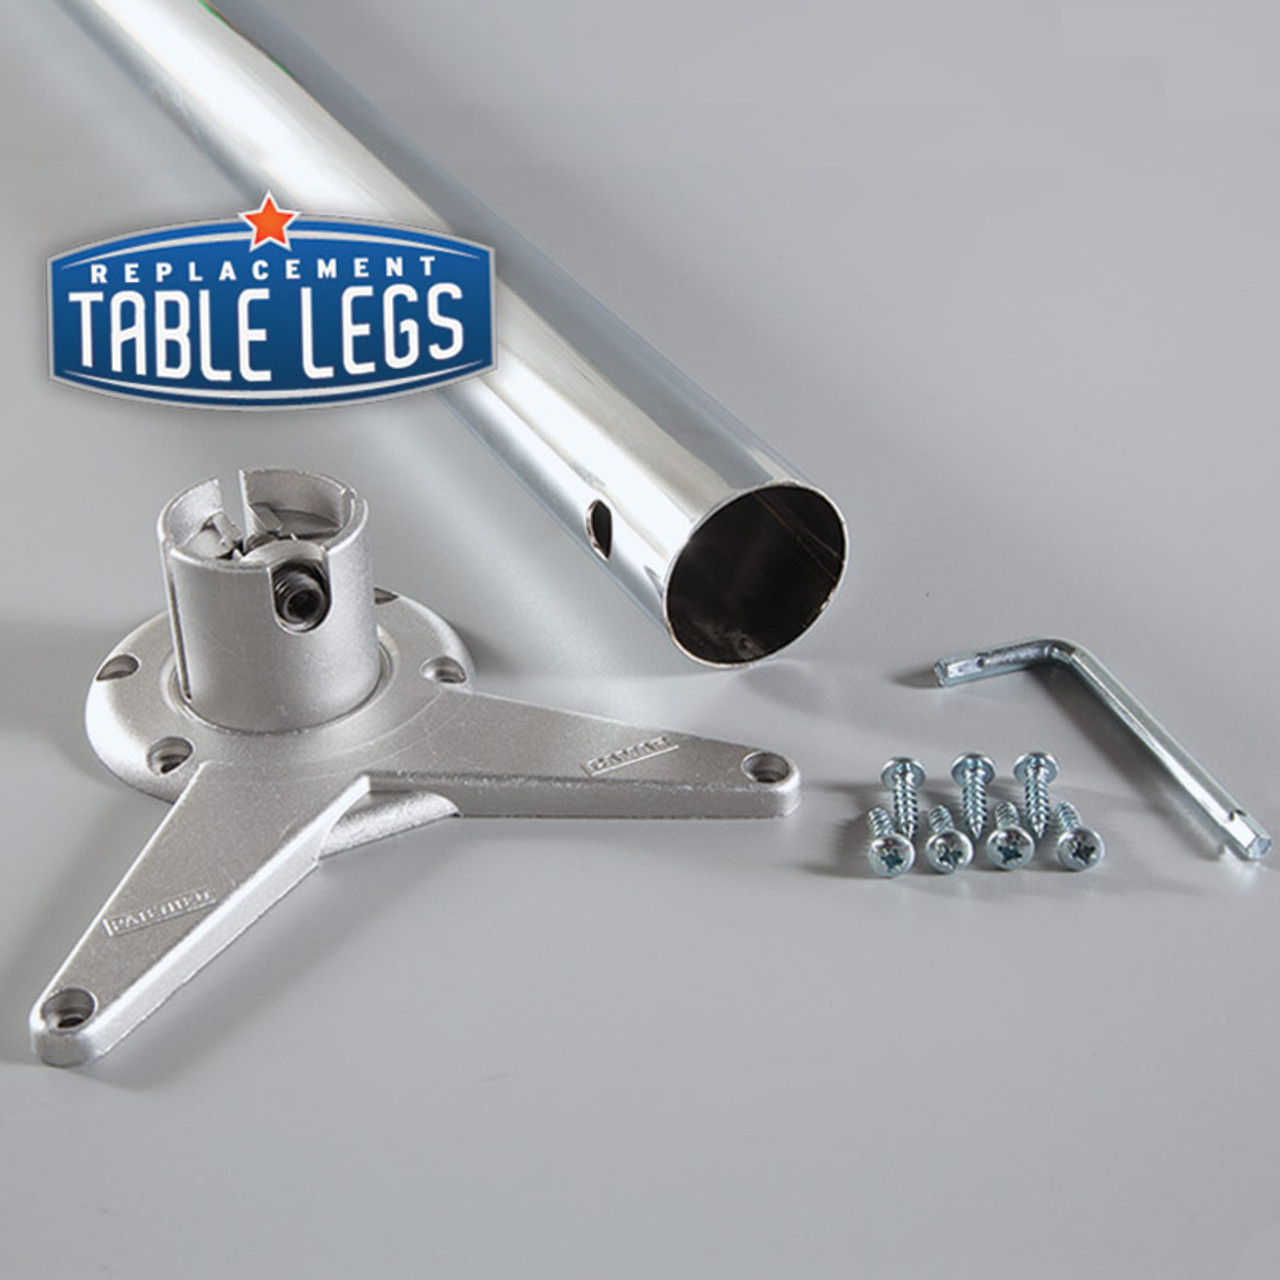 Studio Telescoping Table Leg parts - replacementtablelegs.com